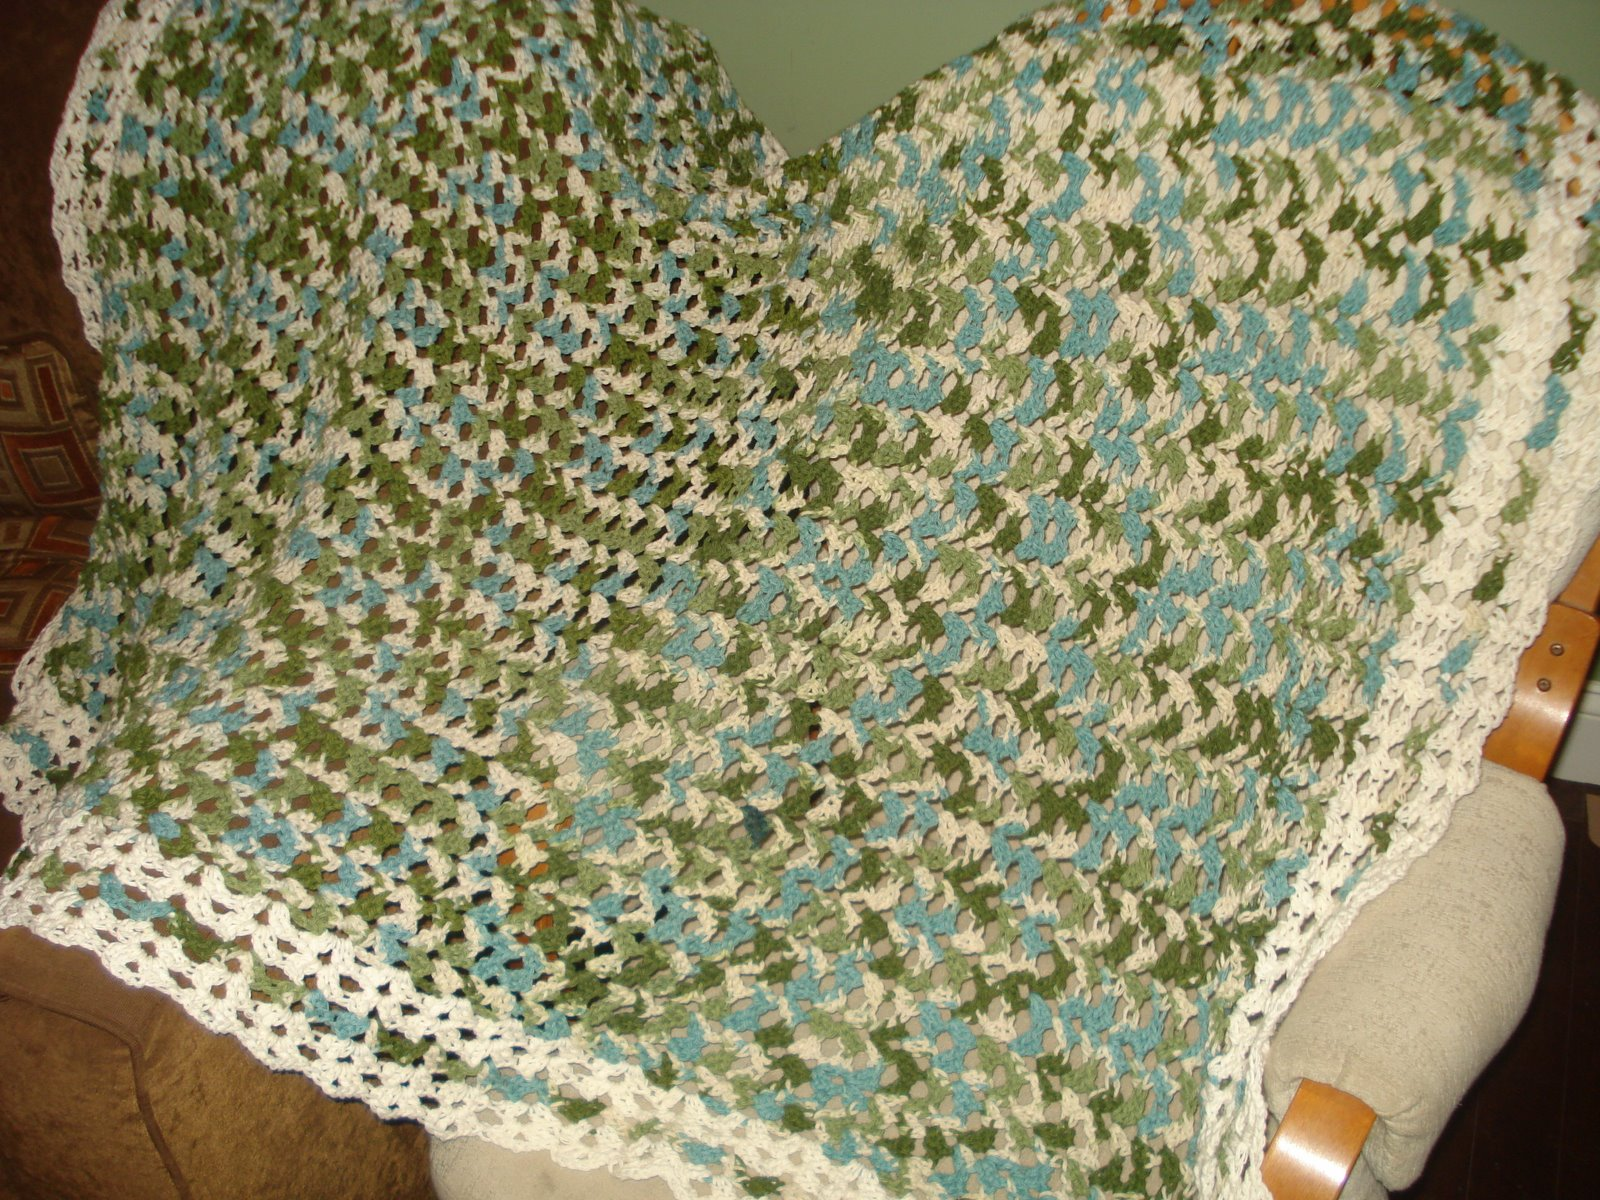 A Ginger Mess Crocheted Blanket With Variegated Yarn